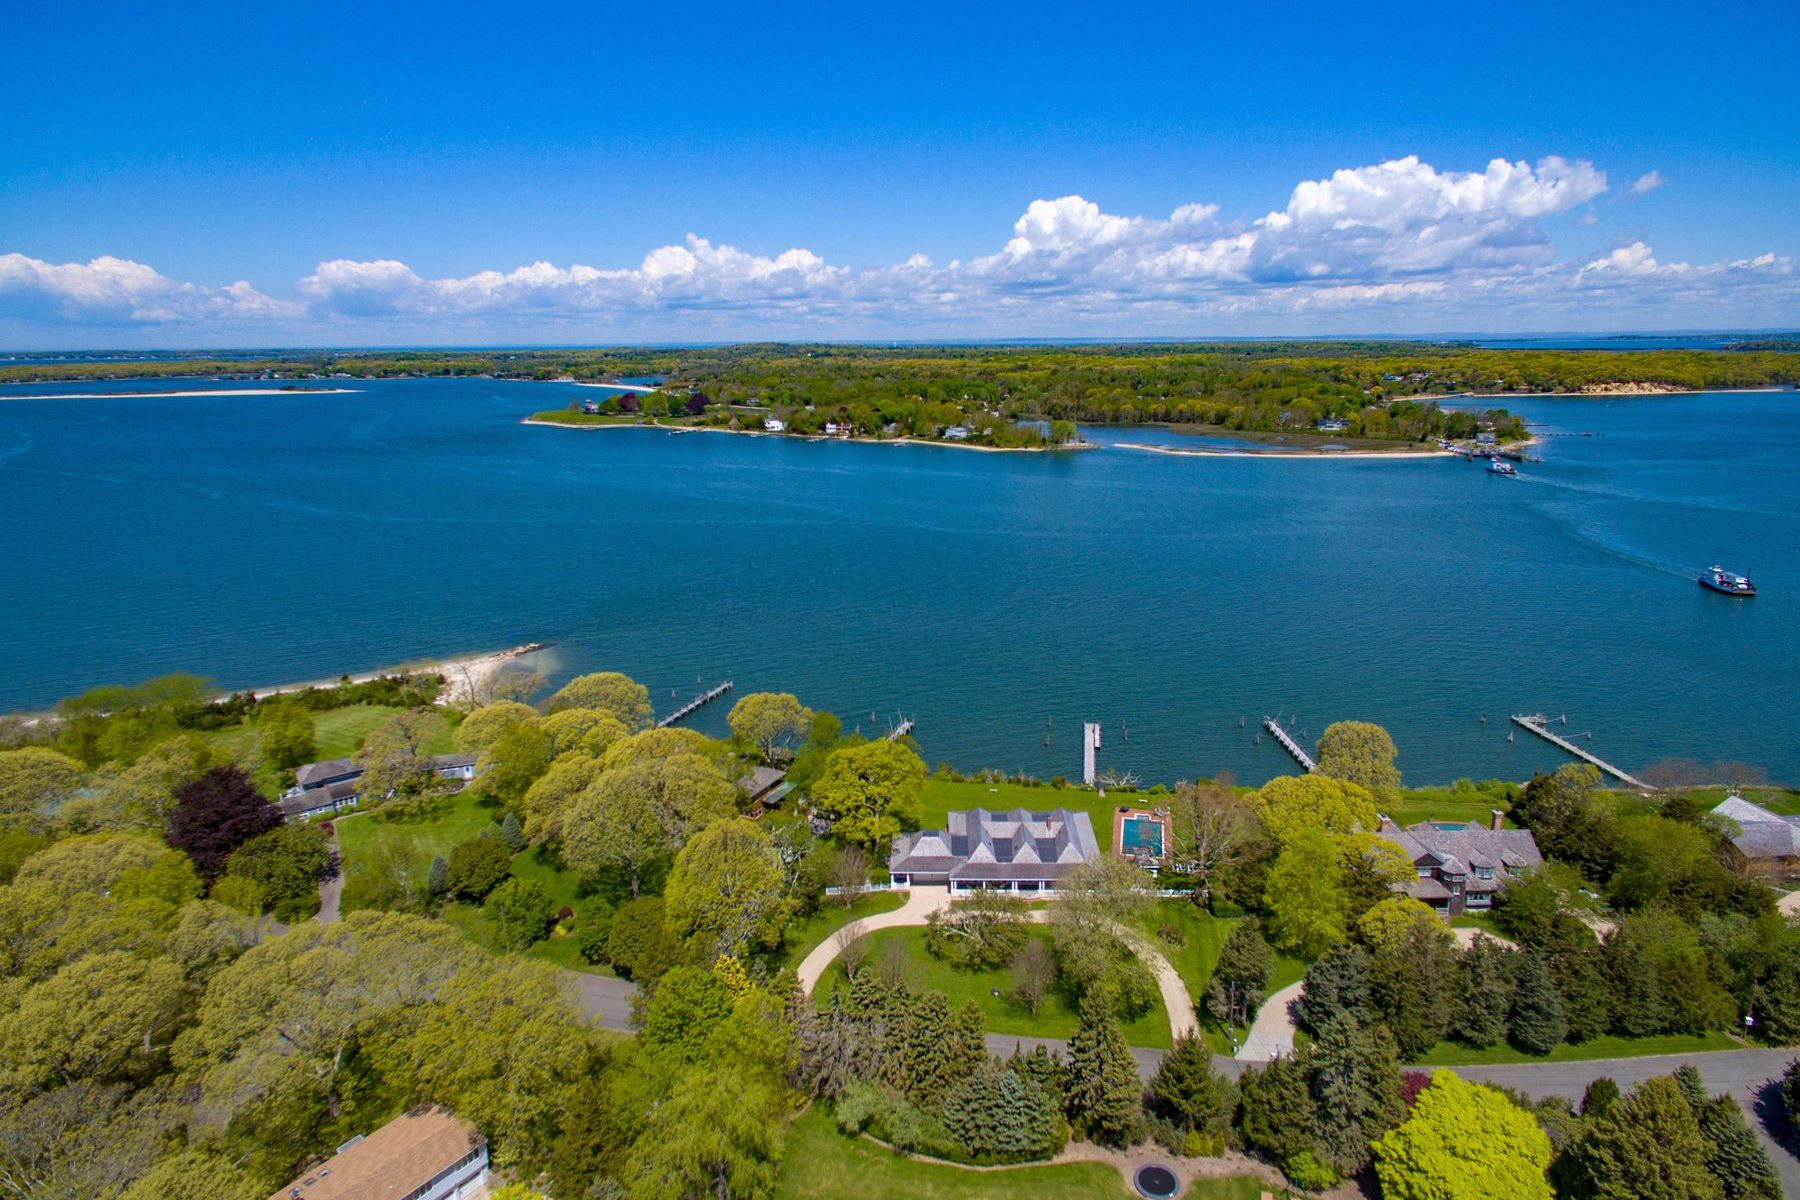 Single Family Home for Active at North Haven Bay Front With Dock 18 North Drive Sag Harbor, New York 11963 United States